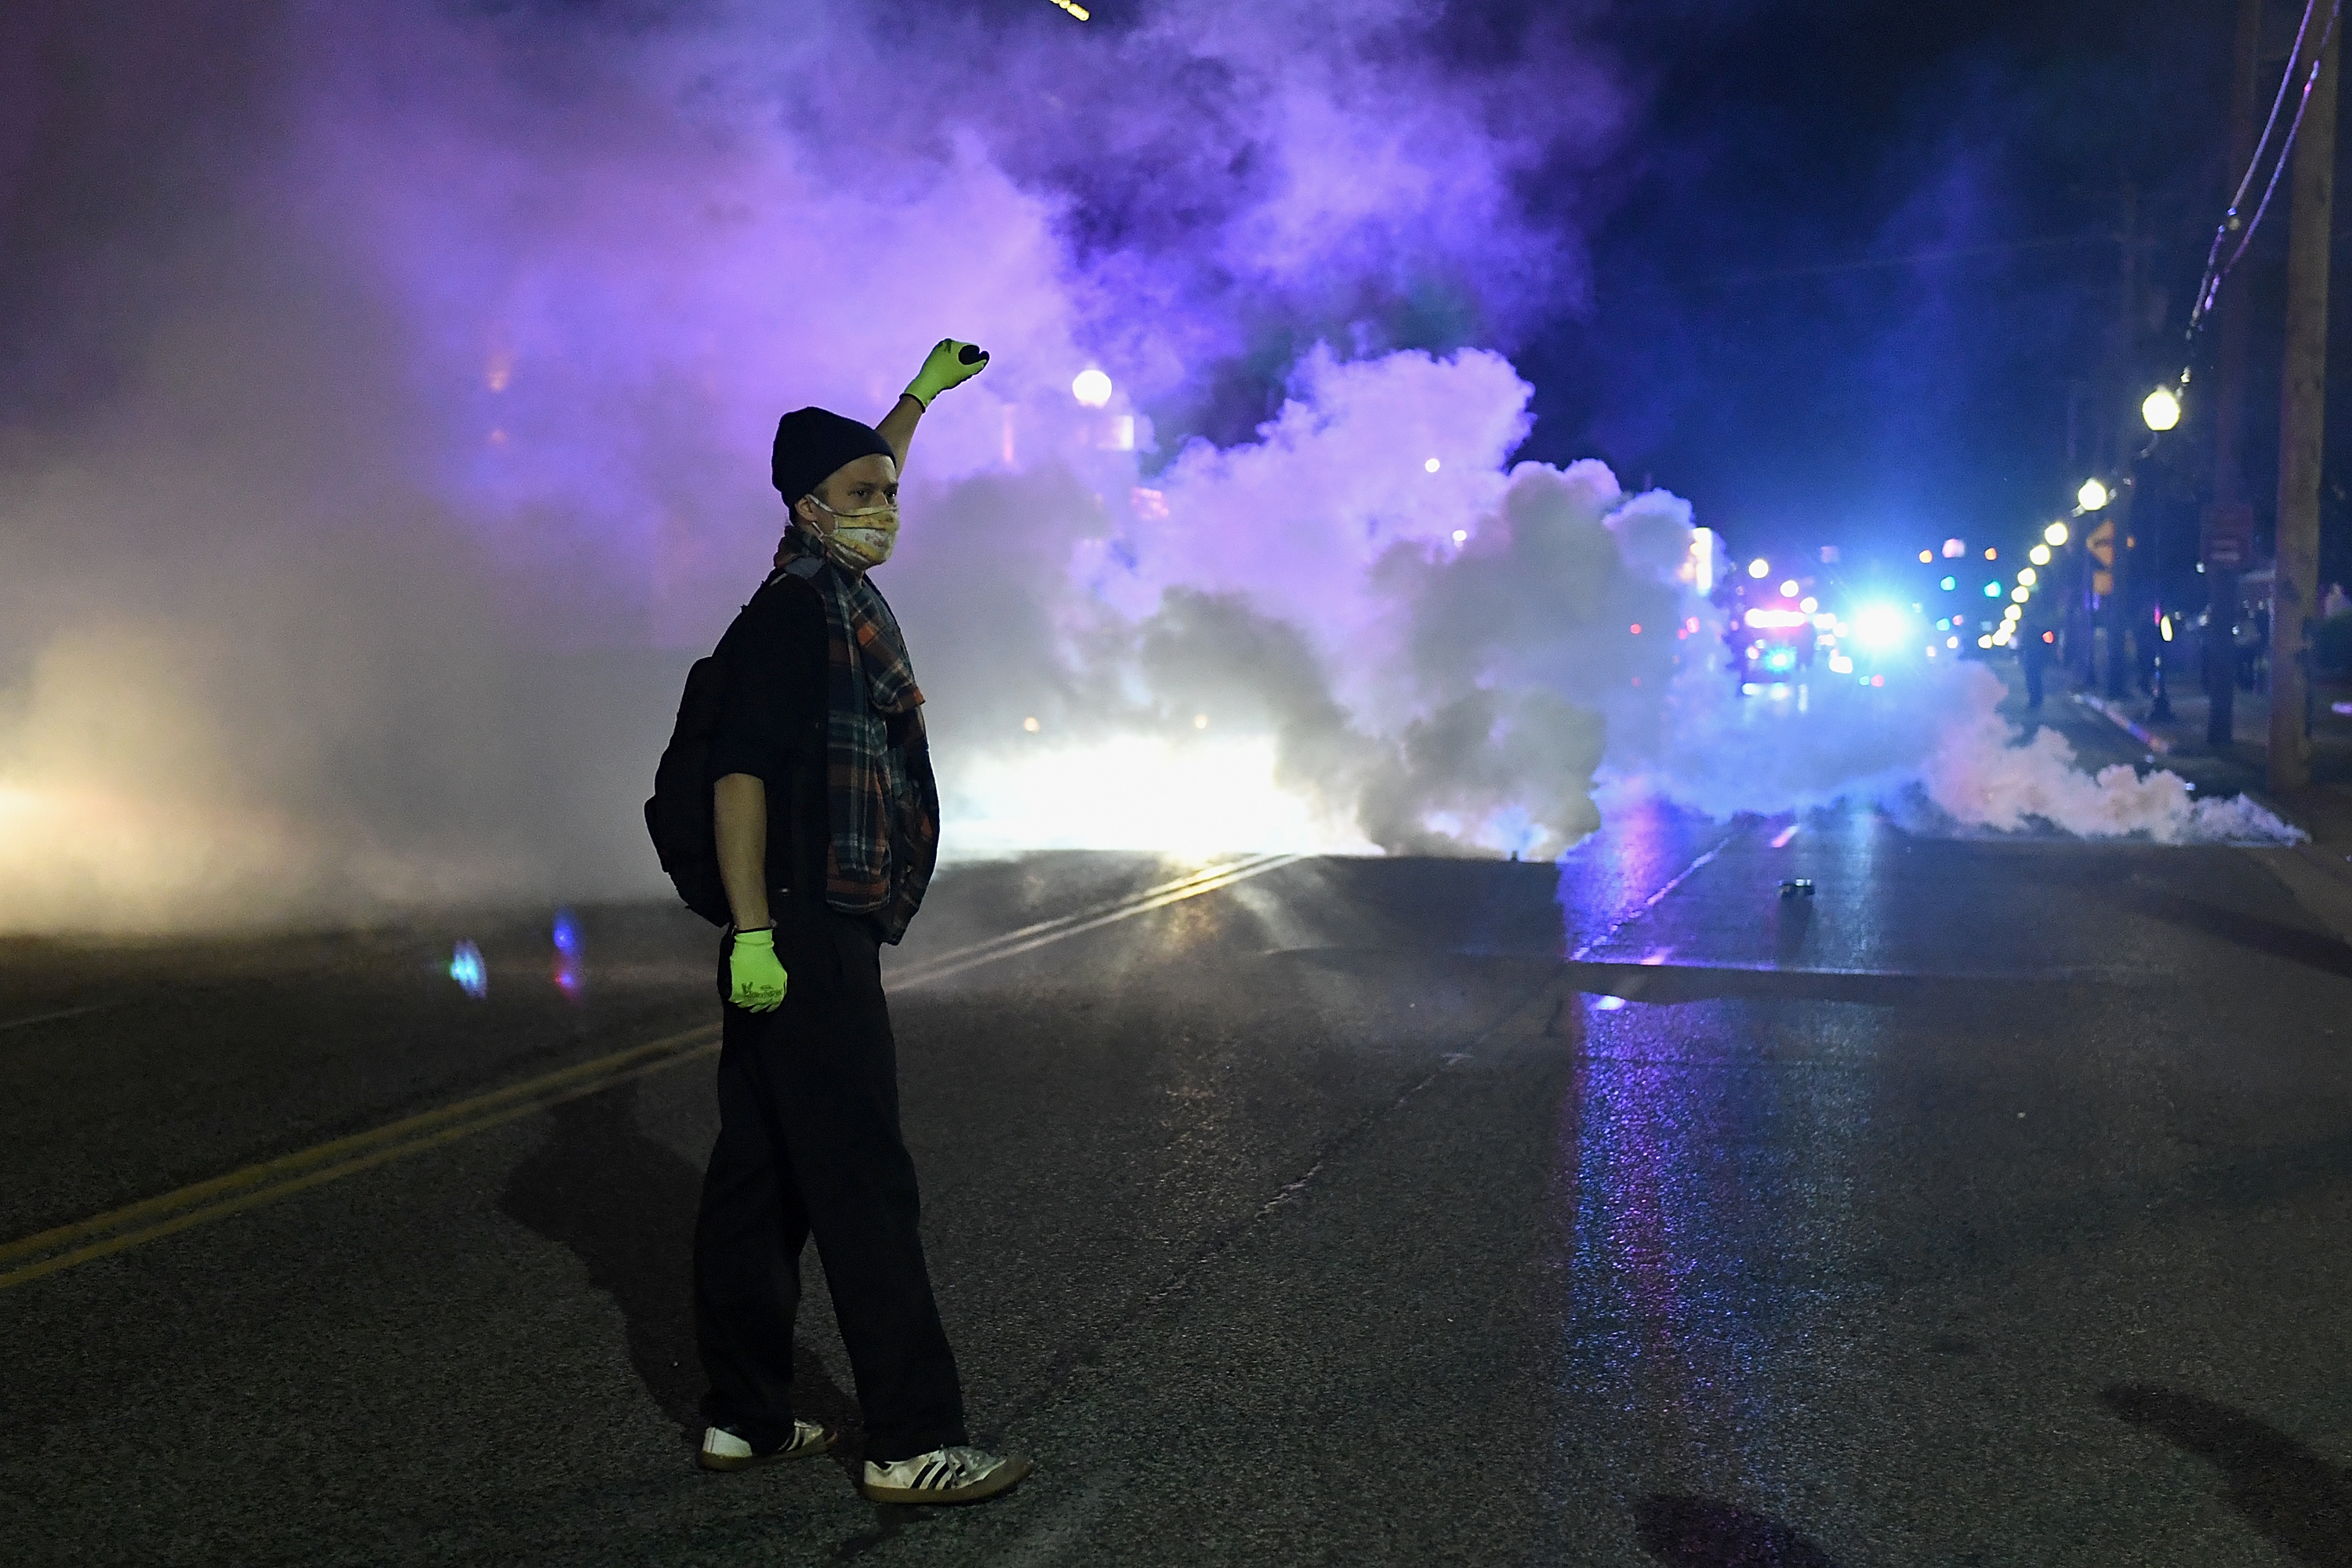 A protester stands amongst tear gas shot by law enforcement to disburse a protest